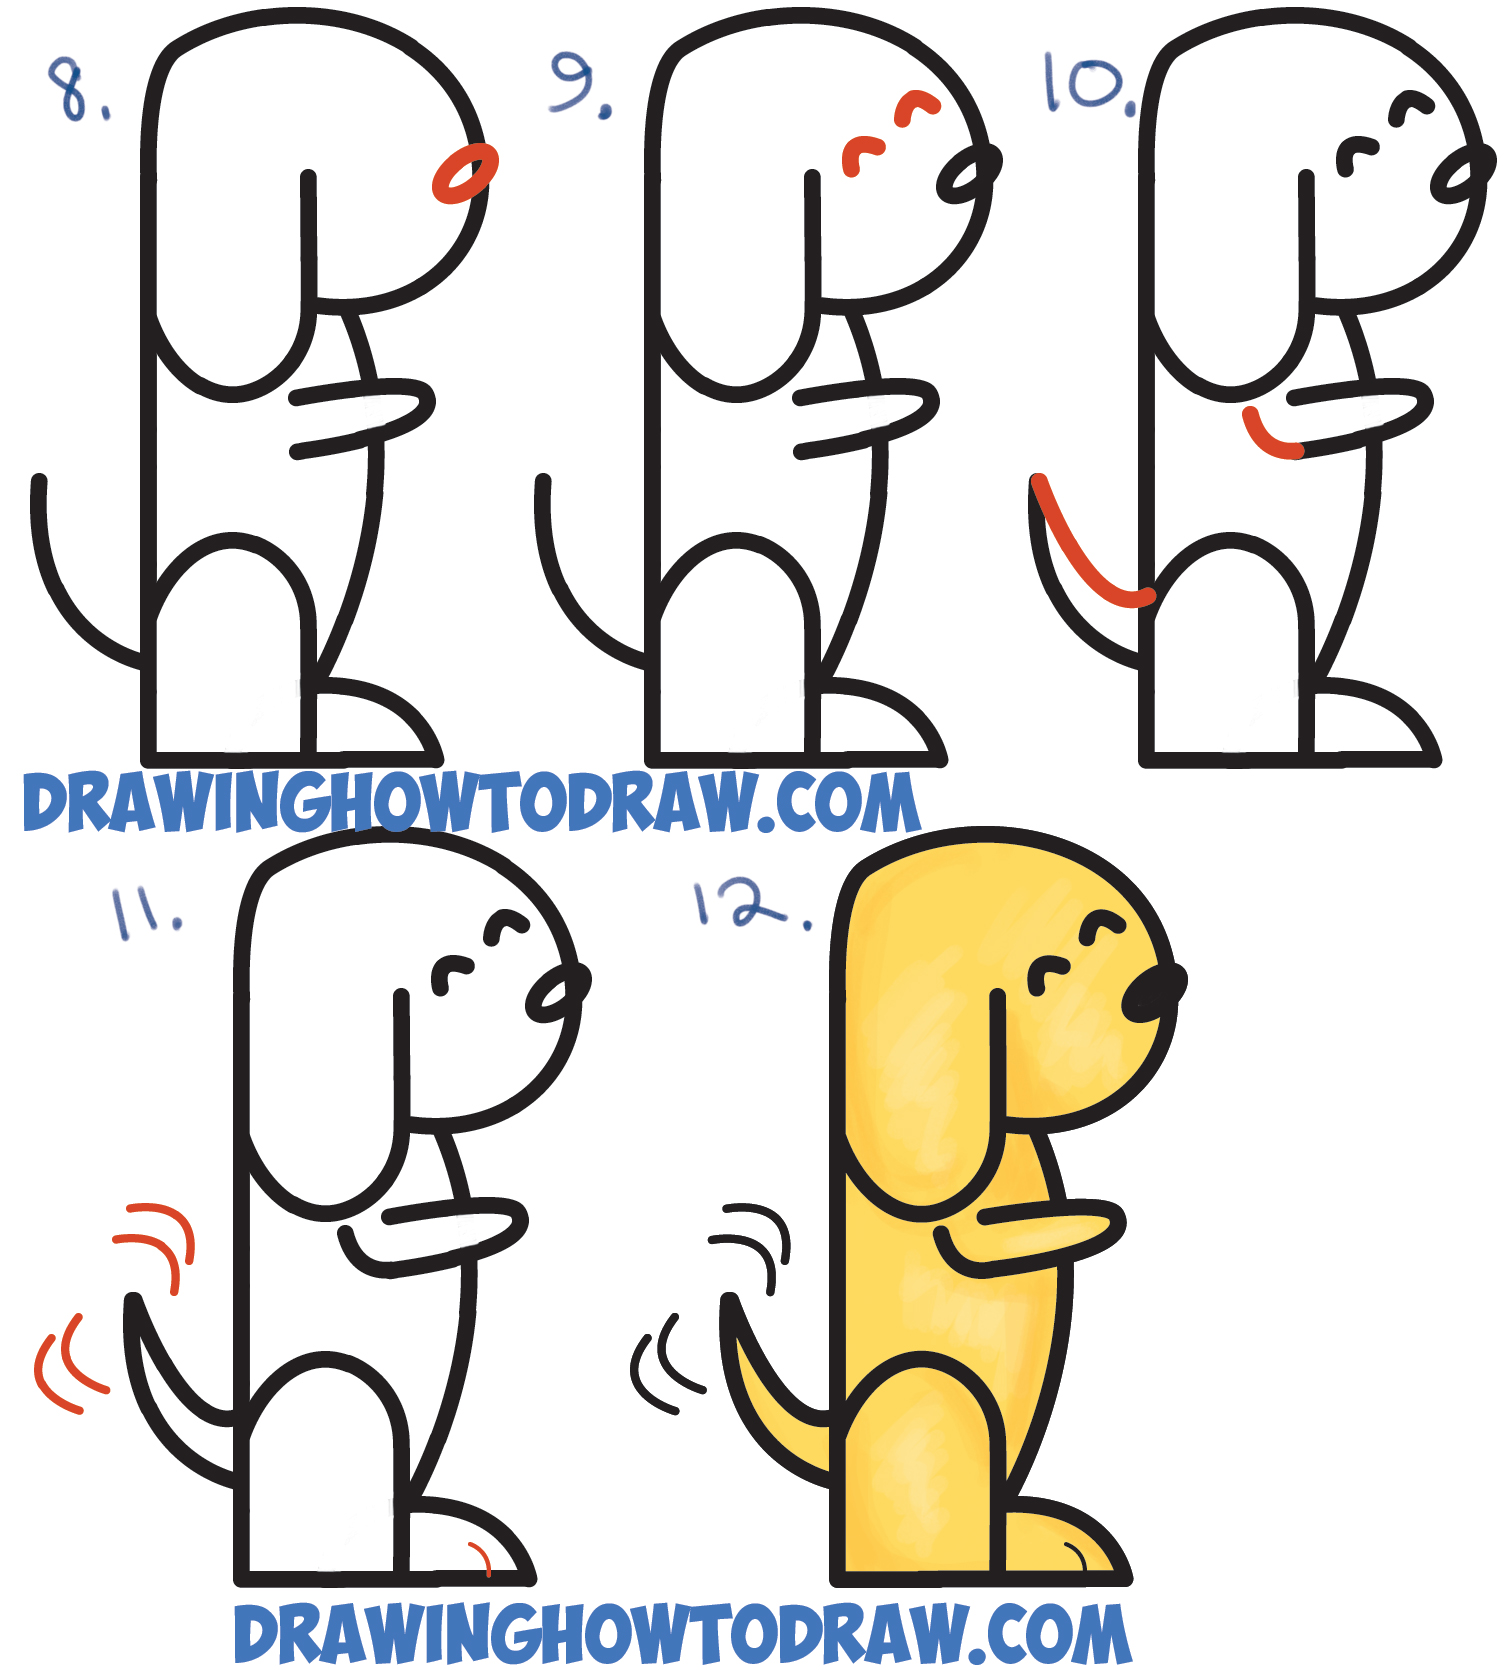 Learn How to Draw a Cartoon Dog Begging from 2 Letter 'h' Shapes Simple Steps Drawing Lesson for Children